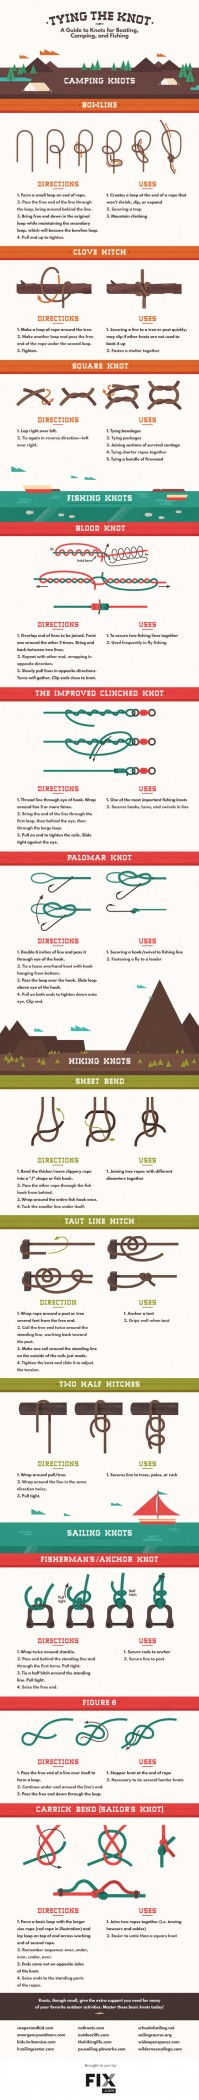 A Guide to knots for boating, camping, and fishing.